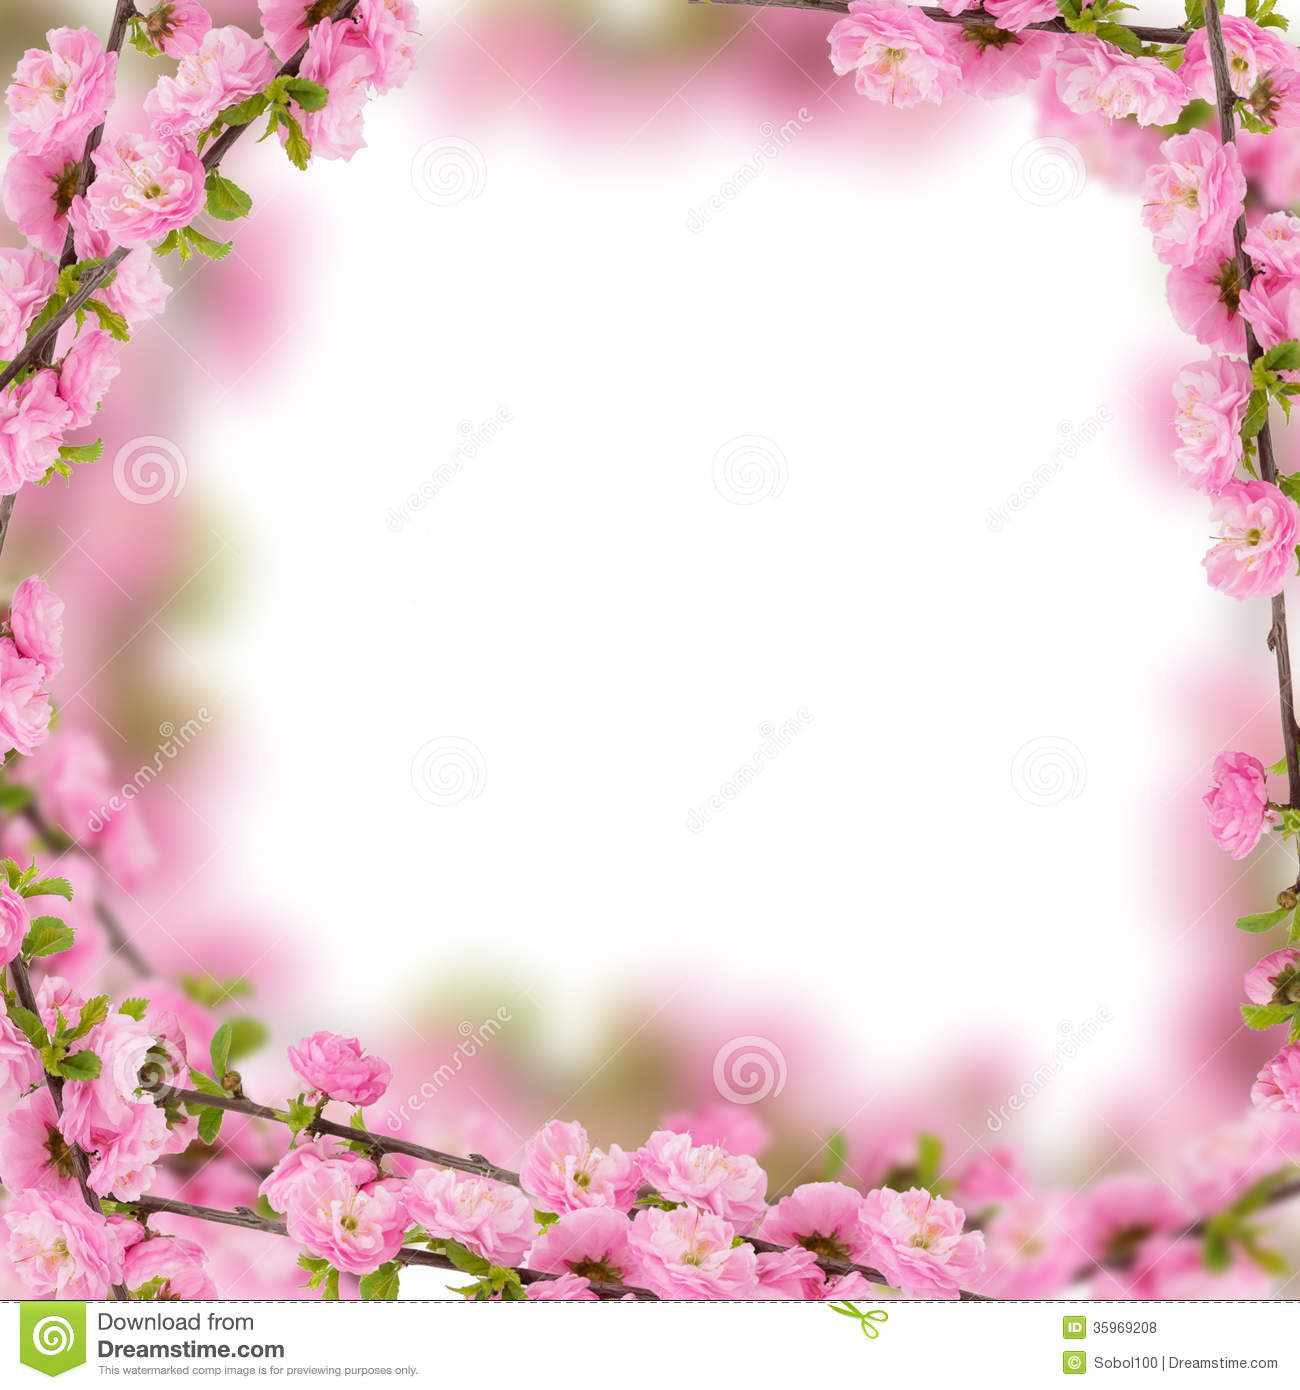 Fresh almond flowers on pink background stock photo image of fresh almond flowers on pink background mother blank mightylinksfo